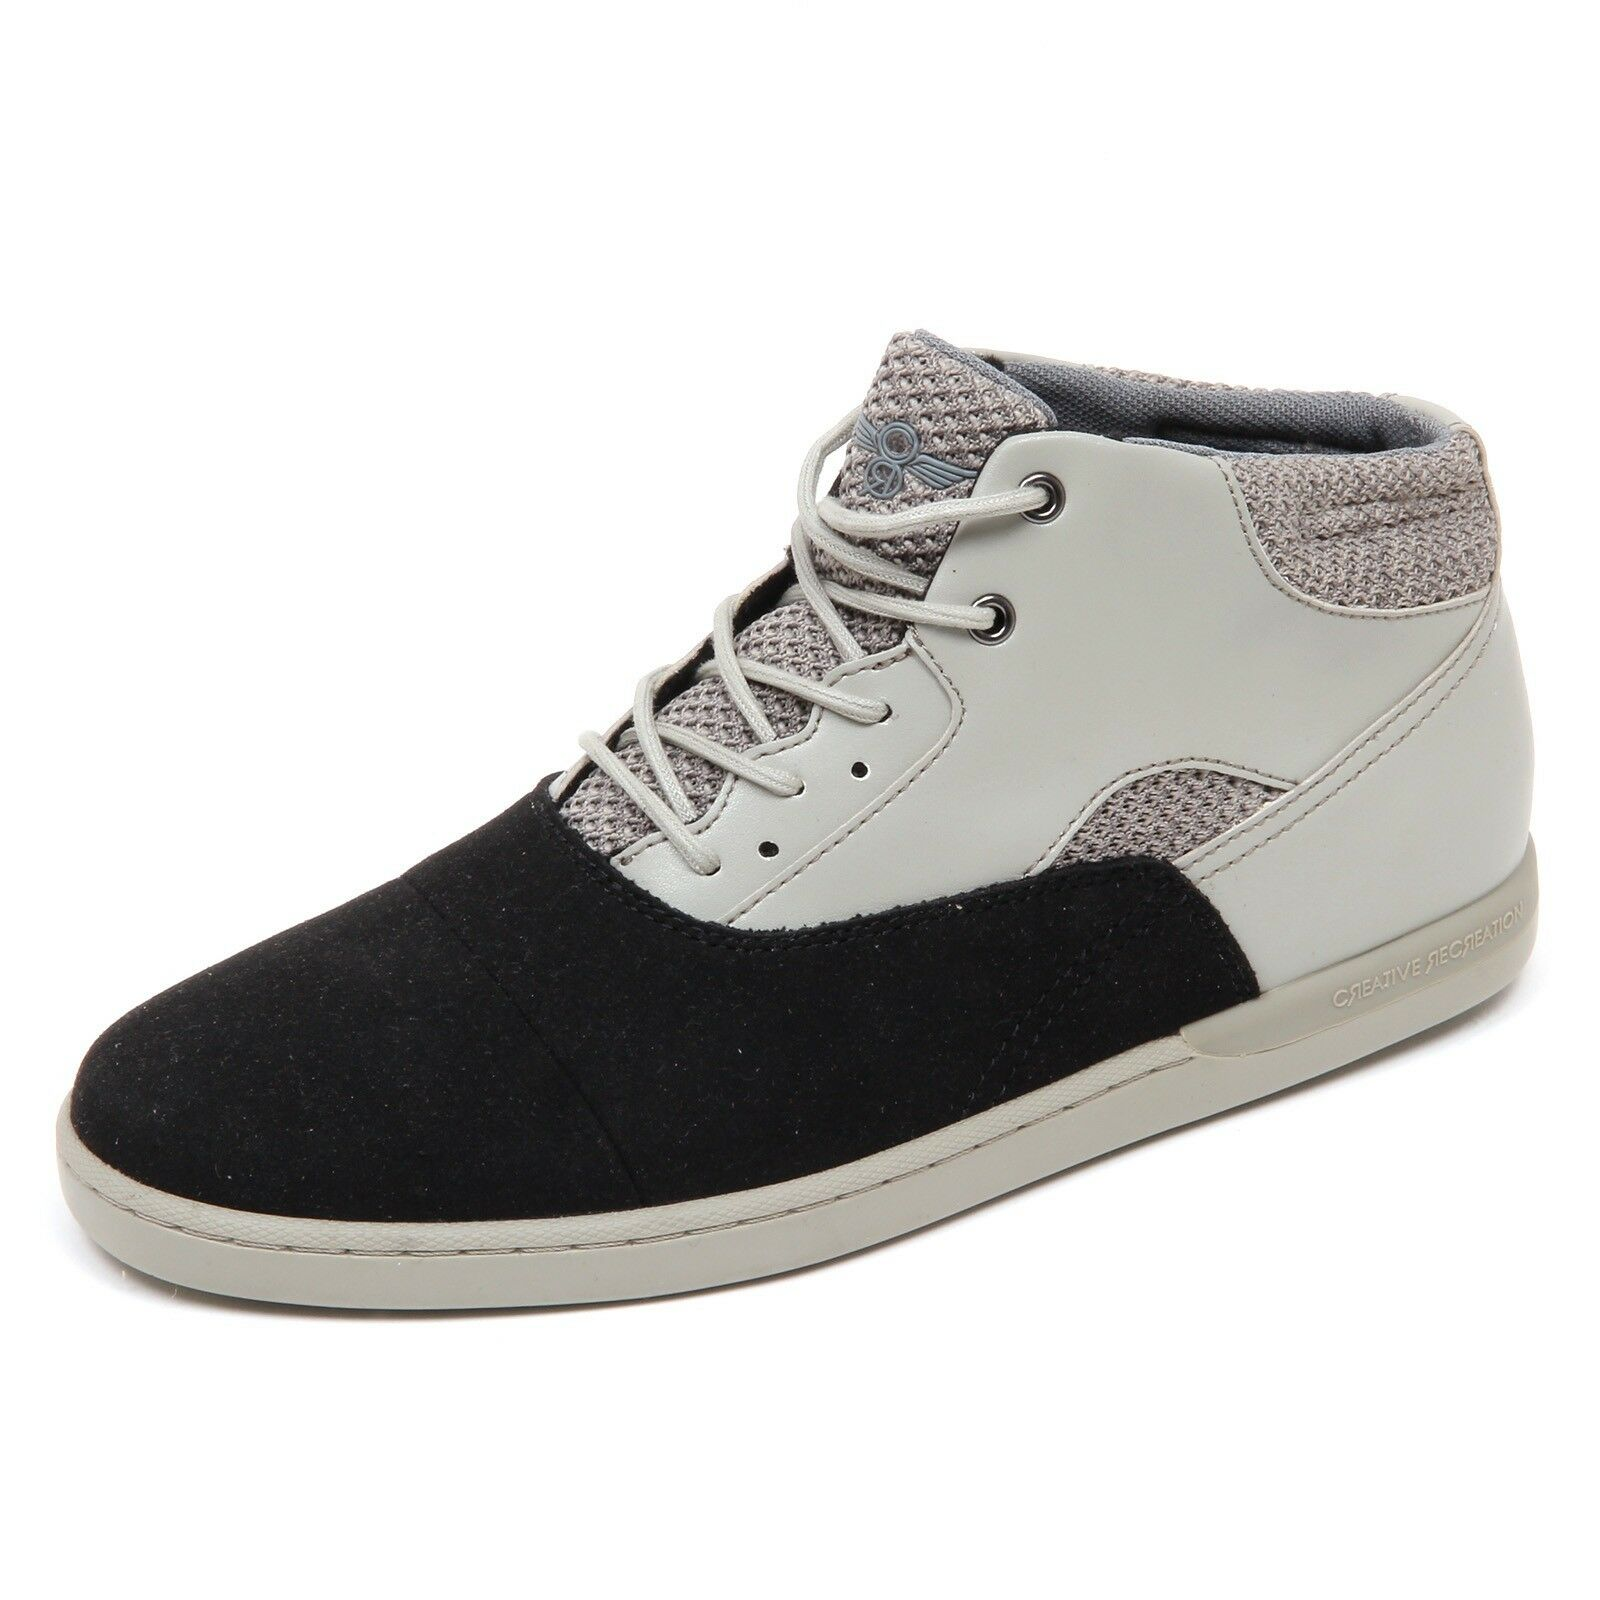 D4692 (without box) sneaker uomo black/grey CREATIVE RECREATION shoe man